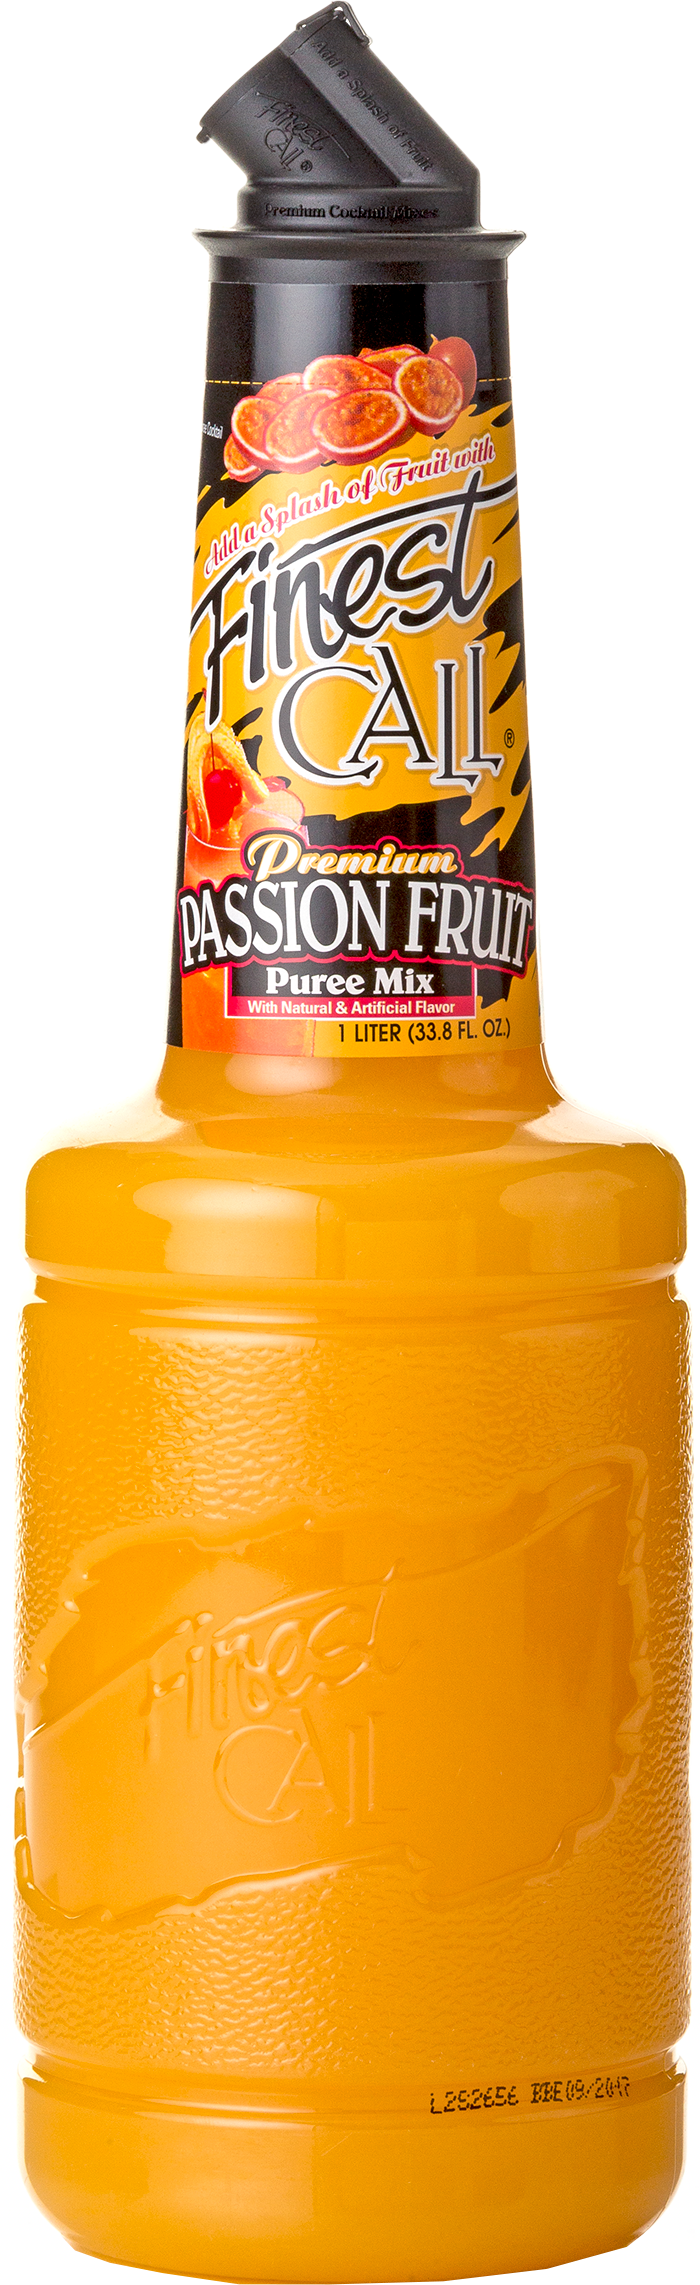 finest call premium passionfruit puree